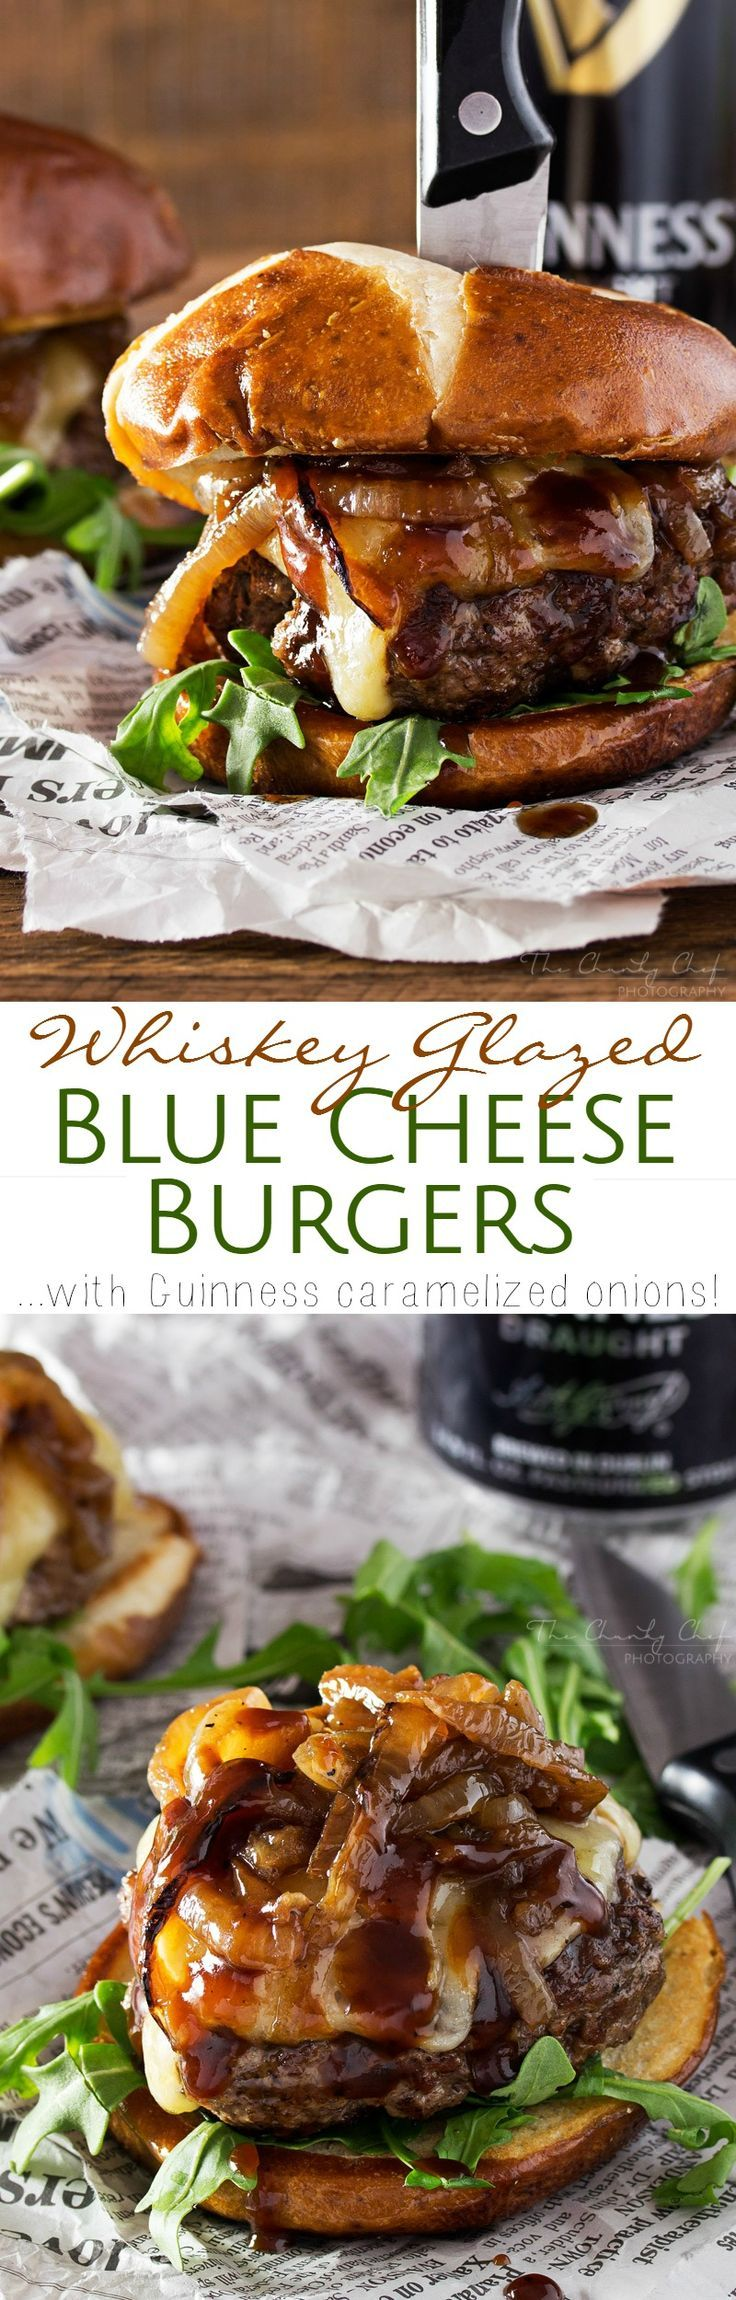 Whiskey-Glazed-Blue-Cheese-Burgers | These blue cheese burgers are brushed with a homemade whiskey glazed, topped with Irish cheese, and smothered in Guinness caramelized onions! | http://thechunkychef.com?utm_content=buffer8514c&utm_medium=social&utm_source=pinterest.com&utm_campaign=buffer